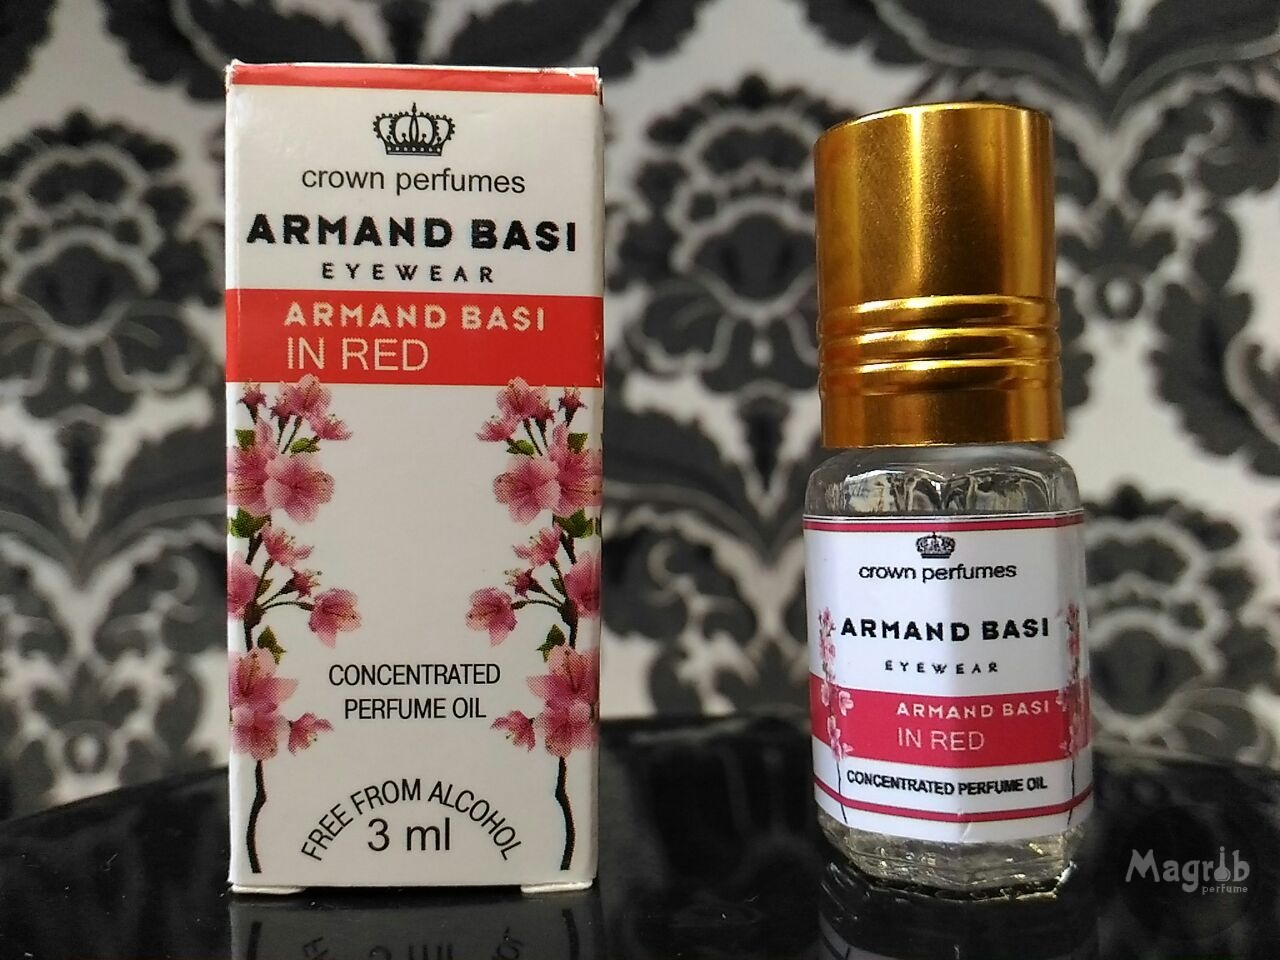 Armand Basi in red 3ml-масляные духи.